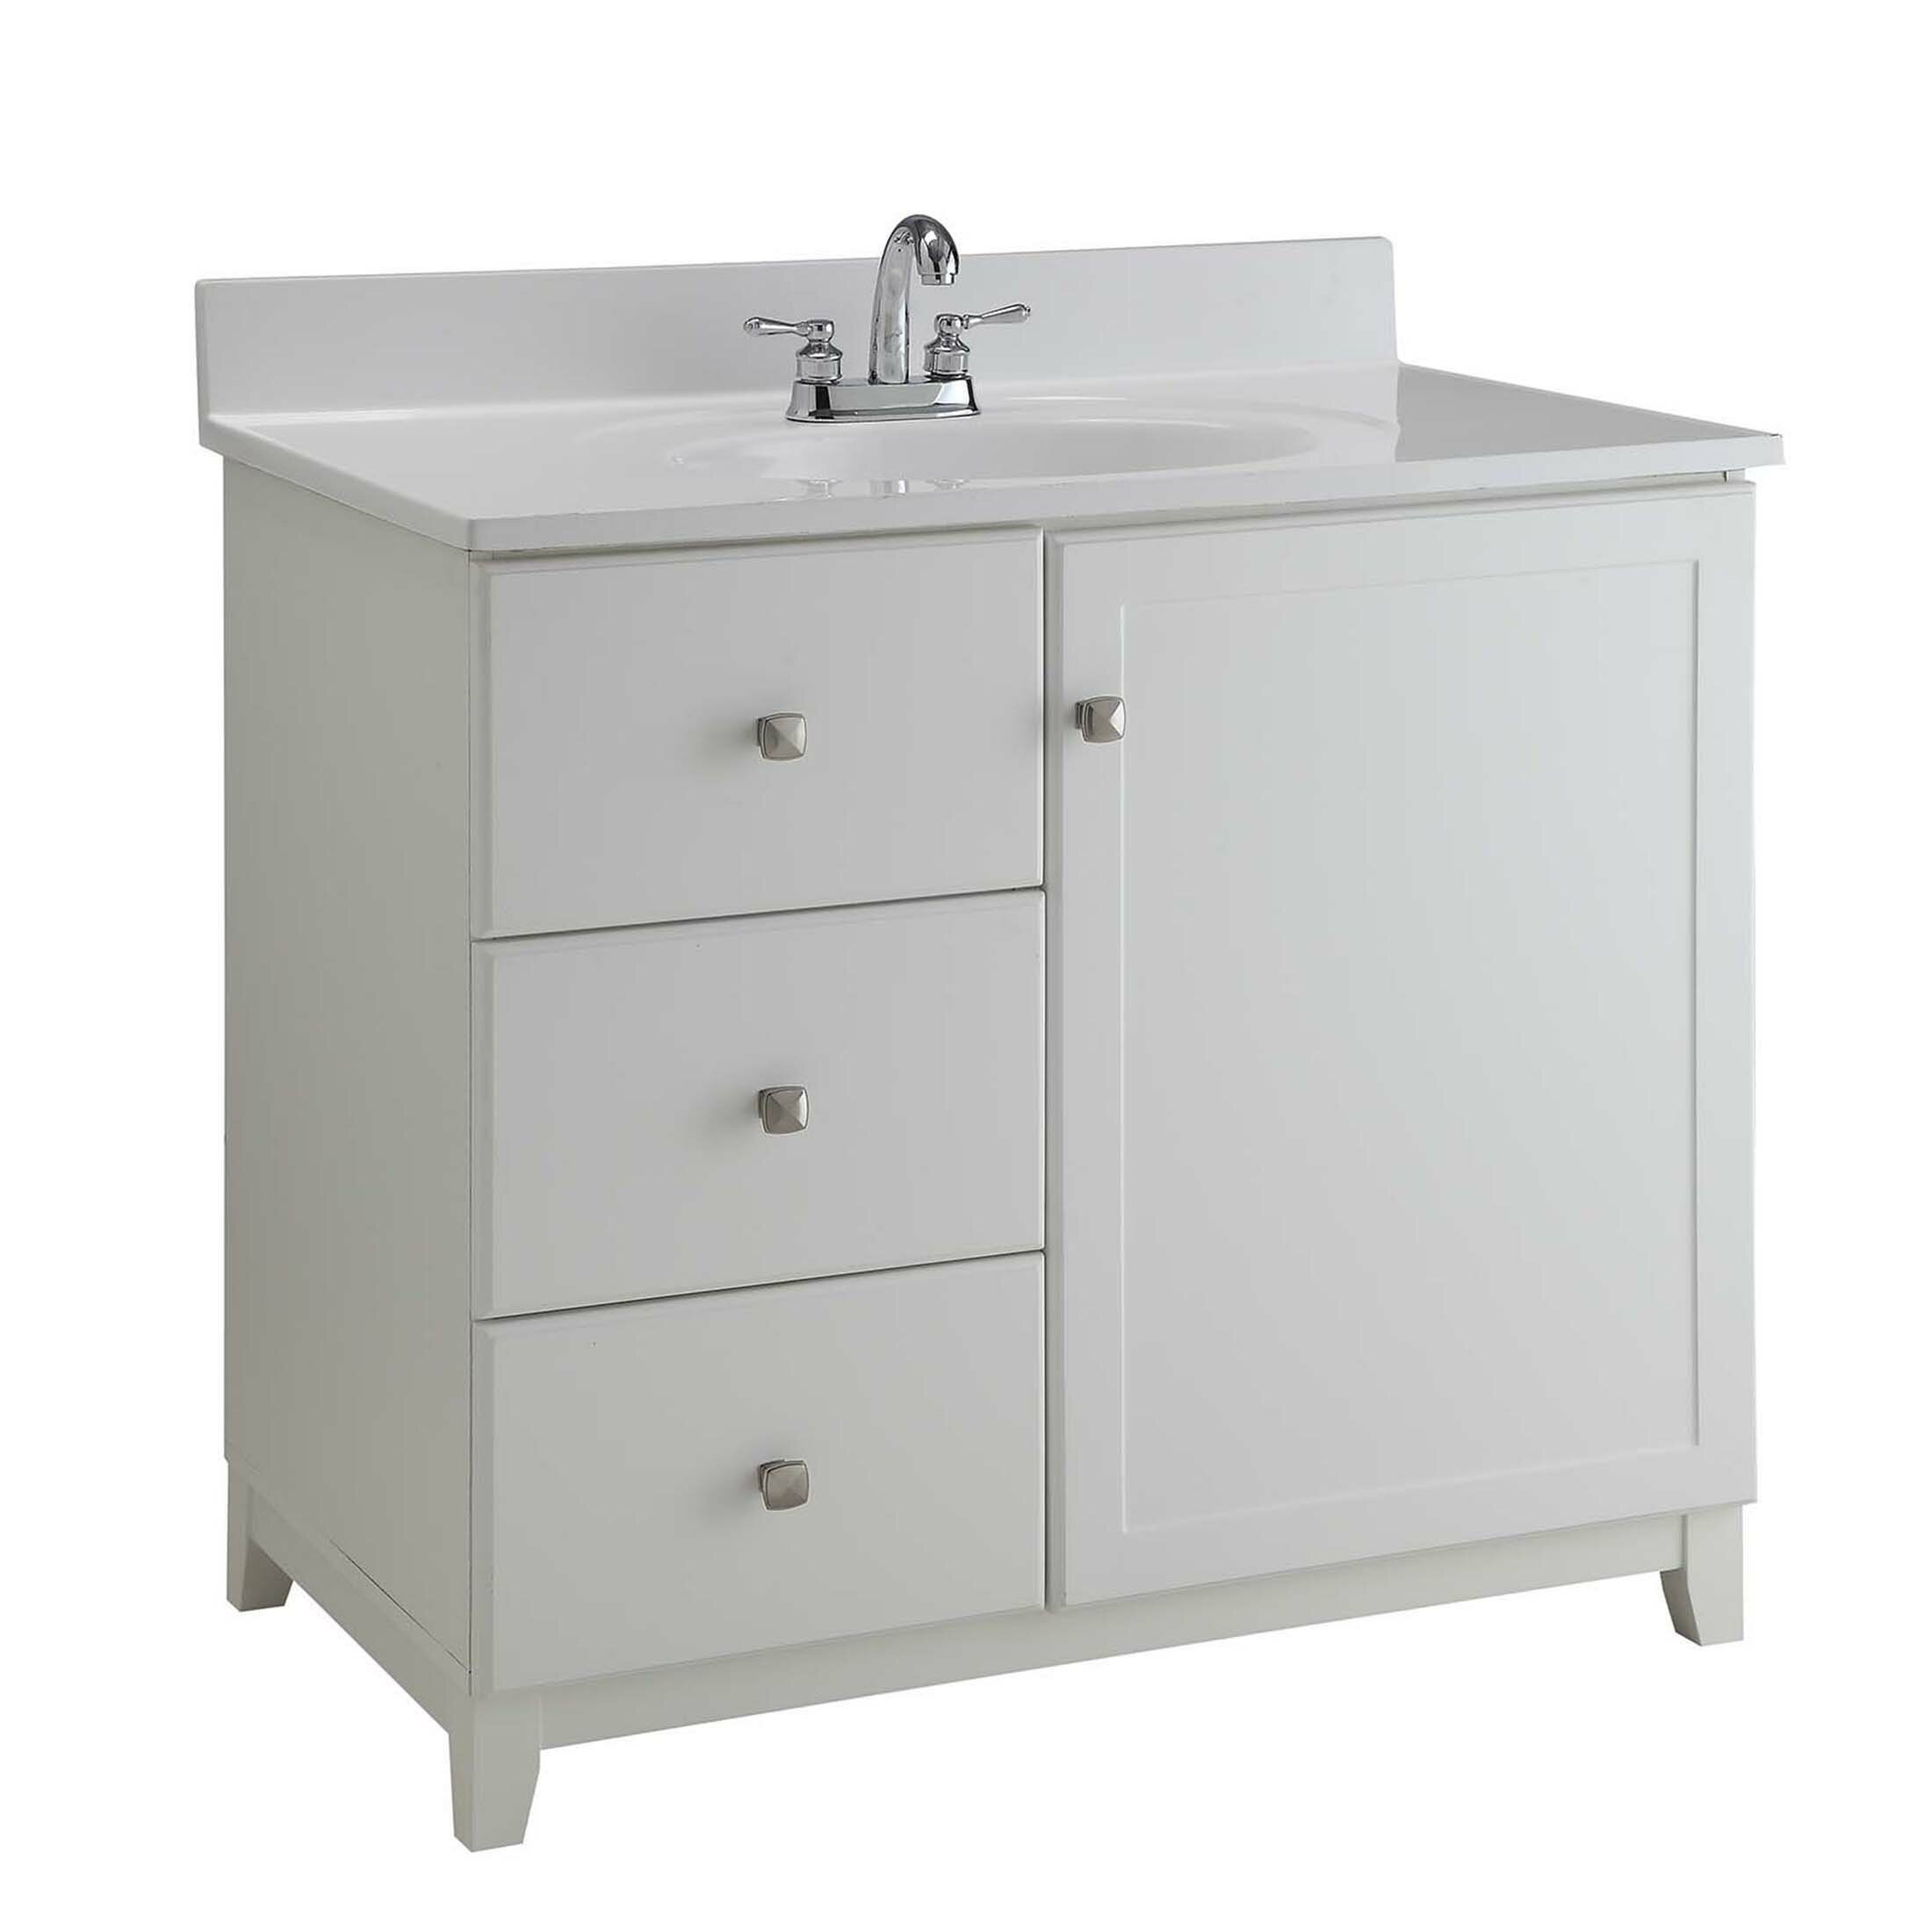 Design house 30 single bathroom vanity base - What is vanity in design this home ...